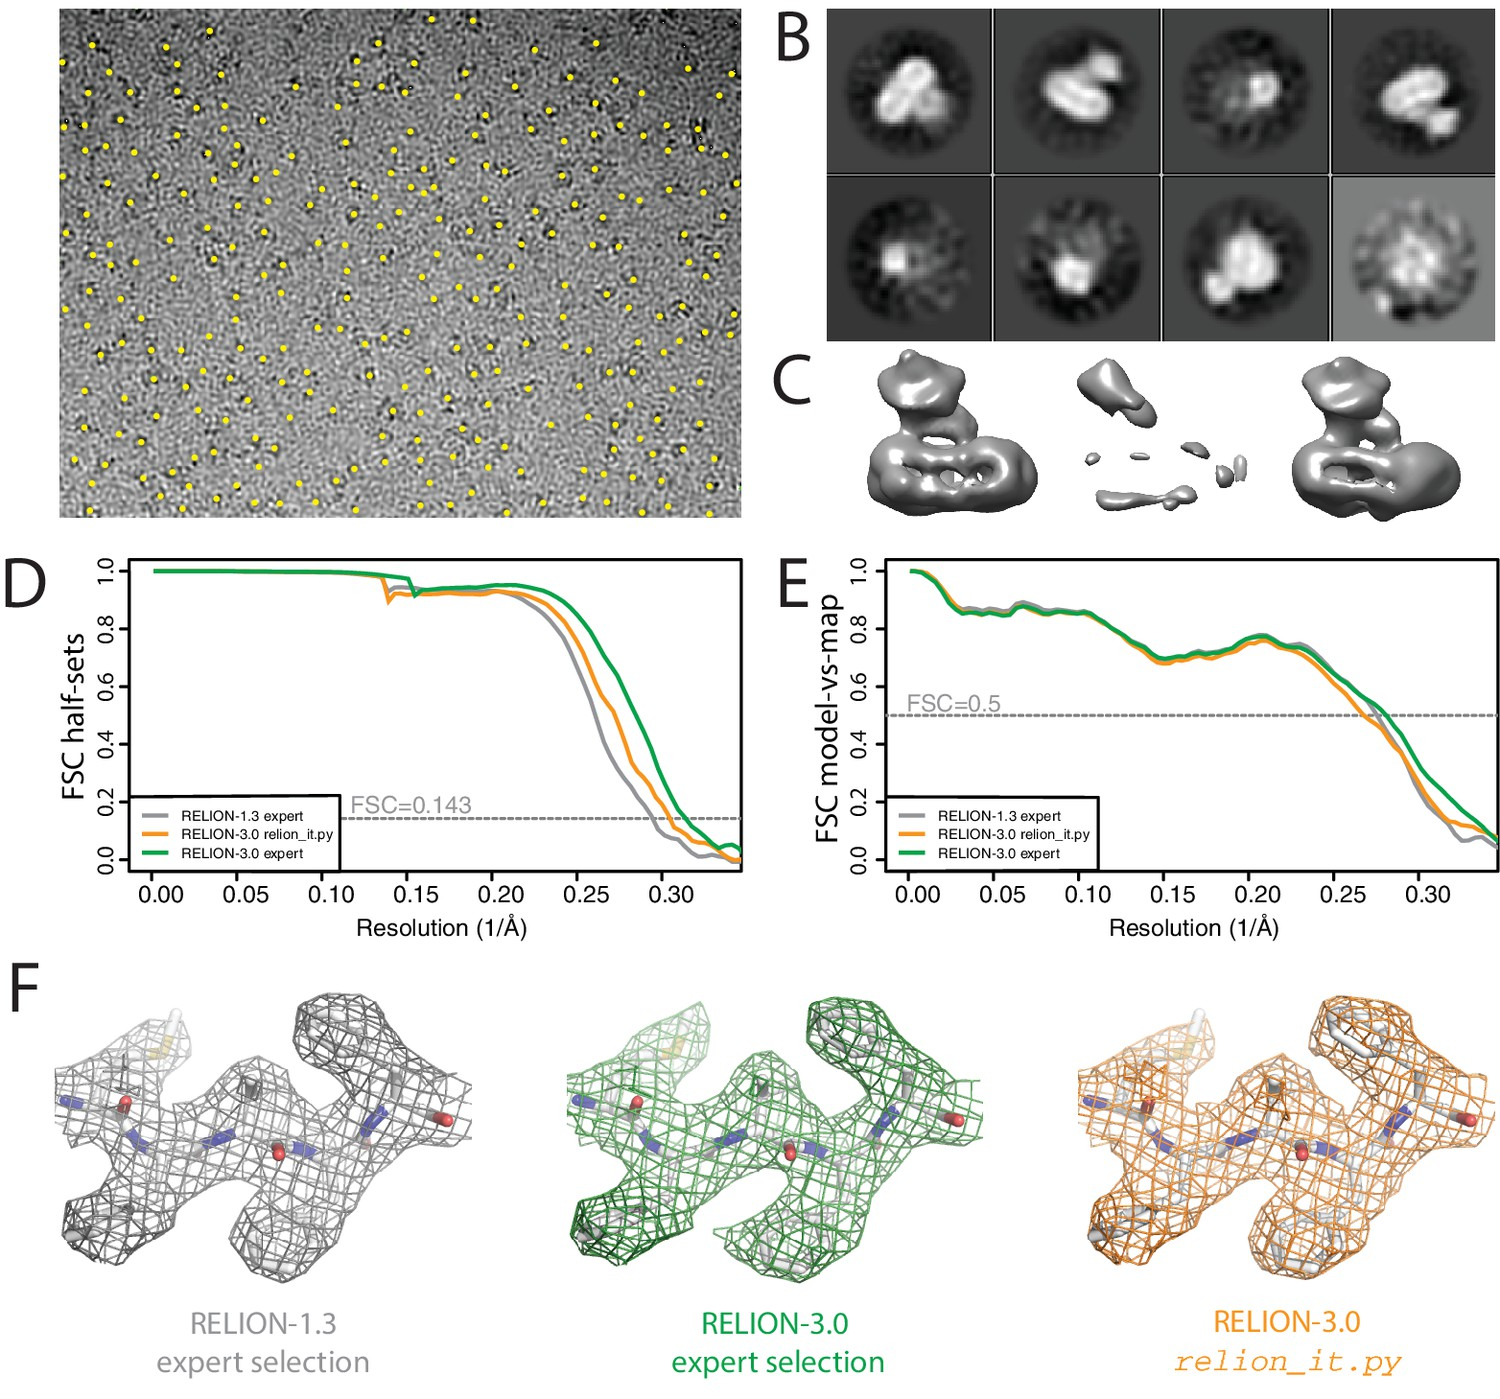 New tools for automated high-resolution cryo-EM structure